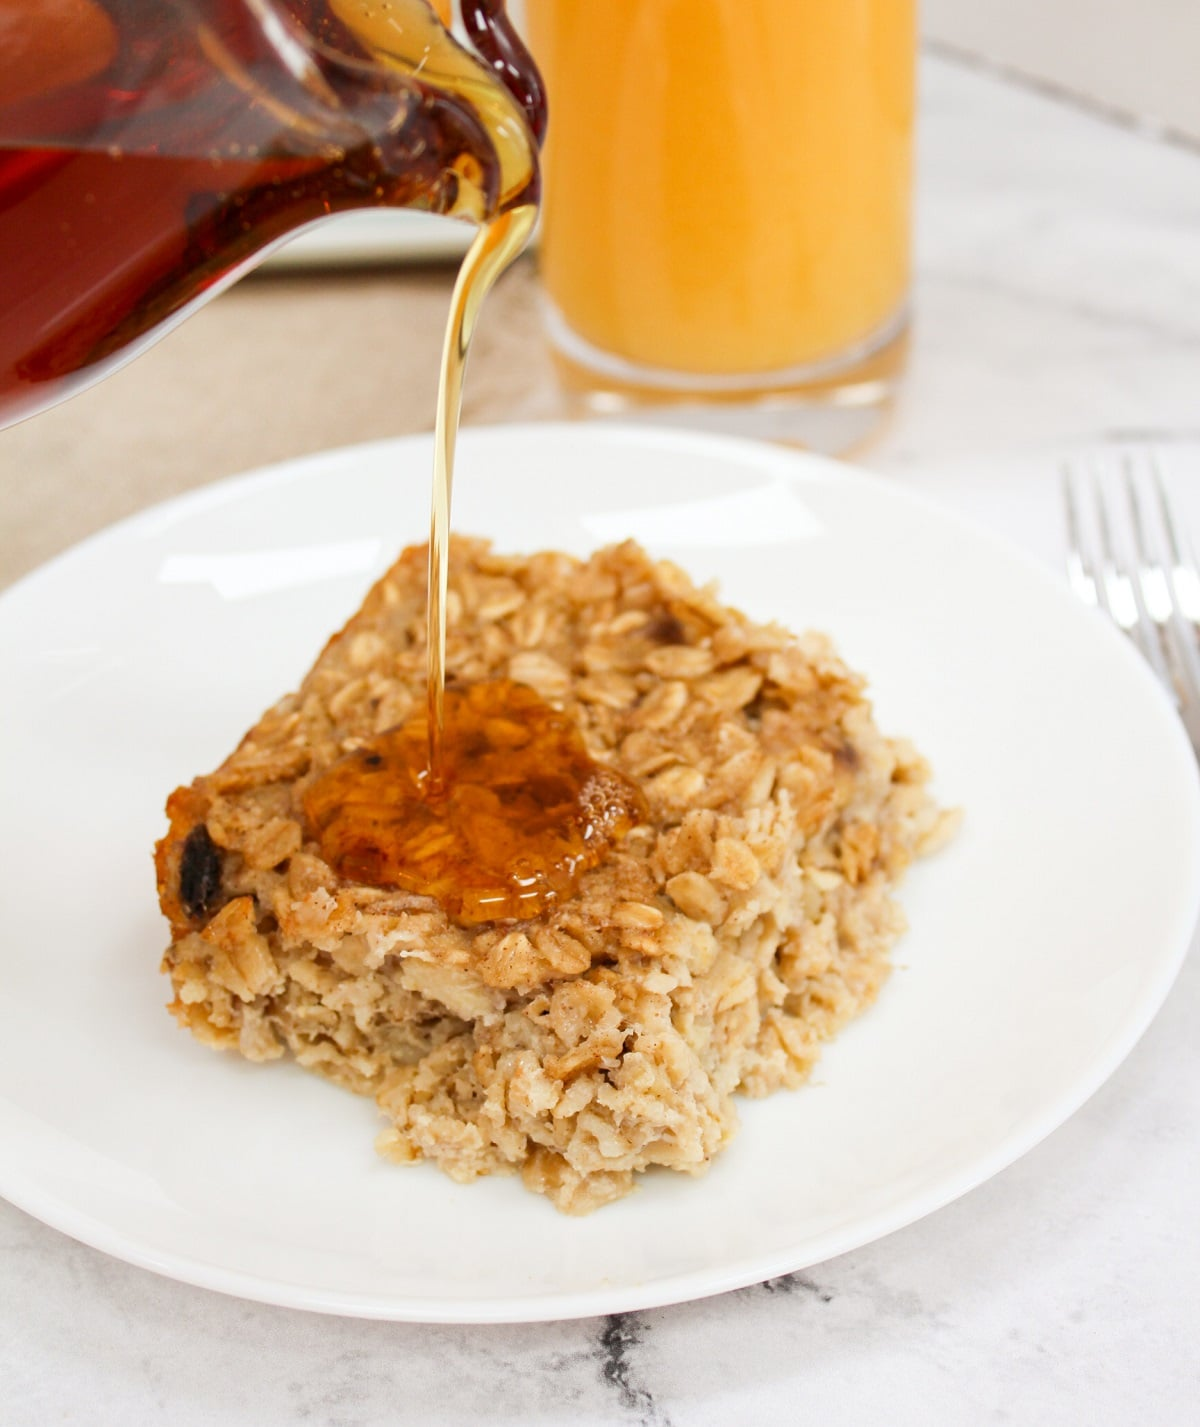 plated oatmeal with syrup poured on top